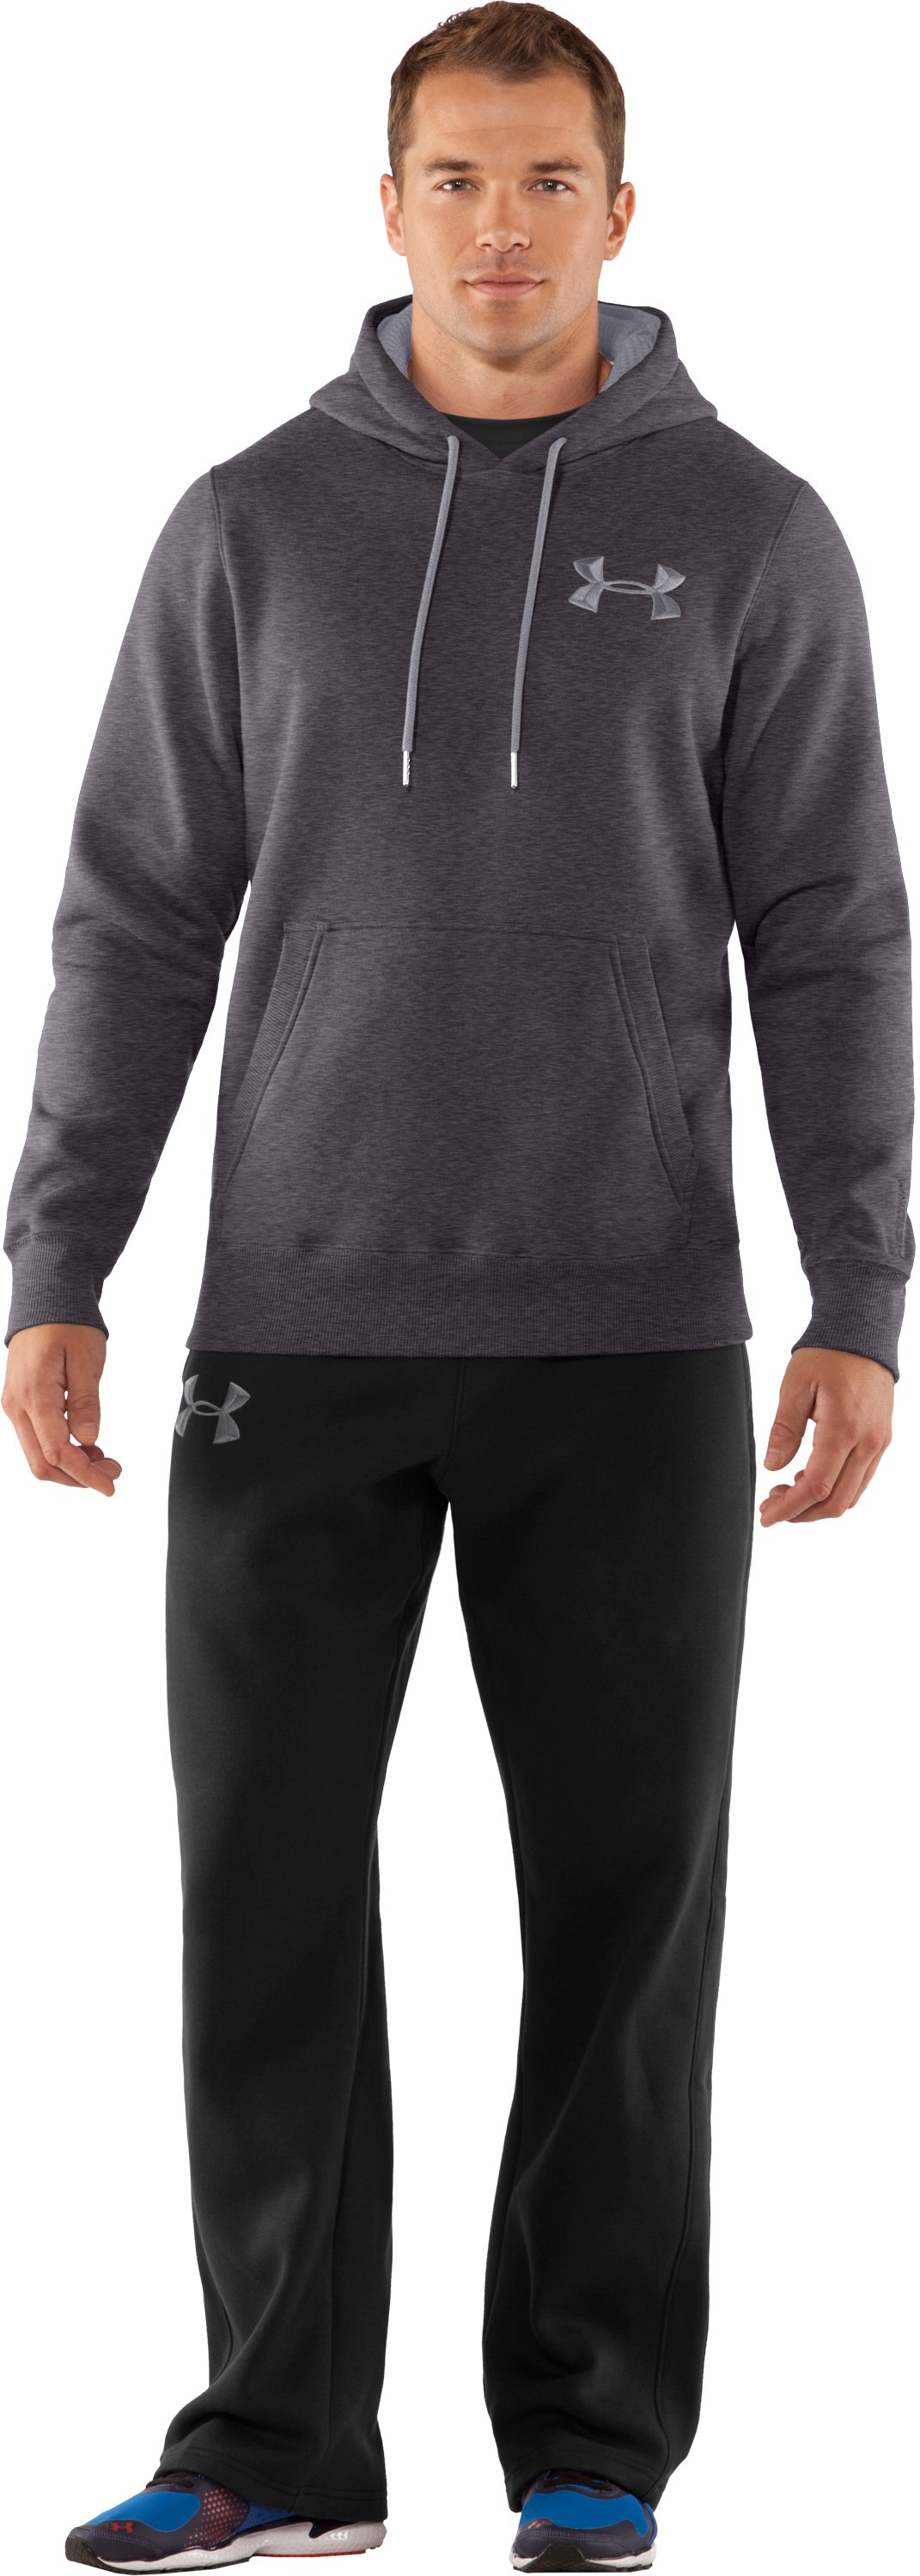 Men's Charged Cotton® Storm Pullover Hoodie, Carbon Heather